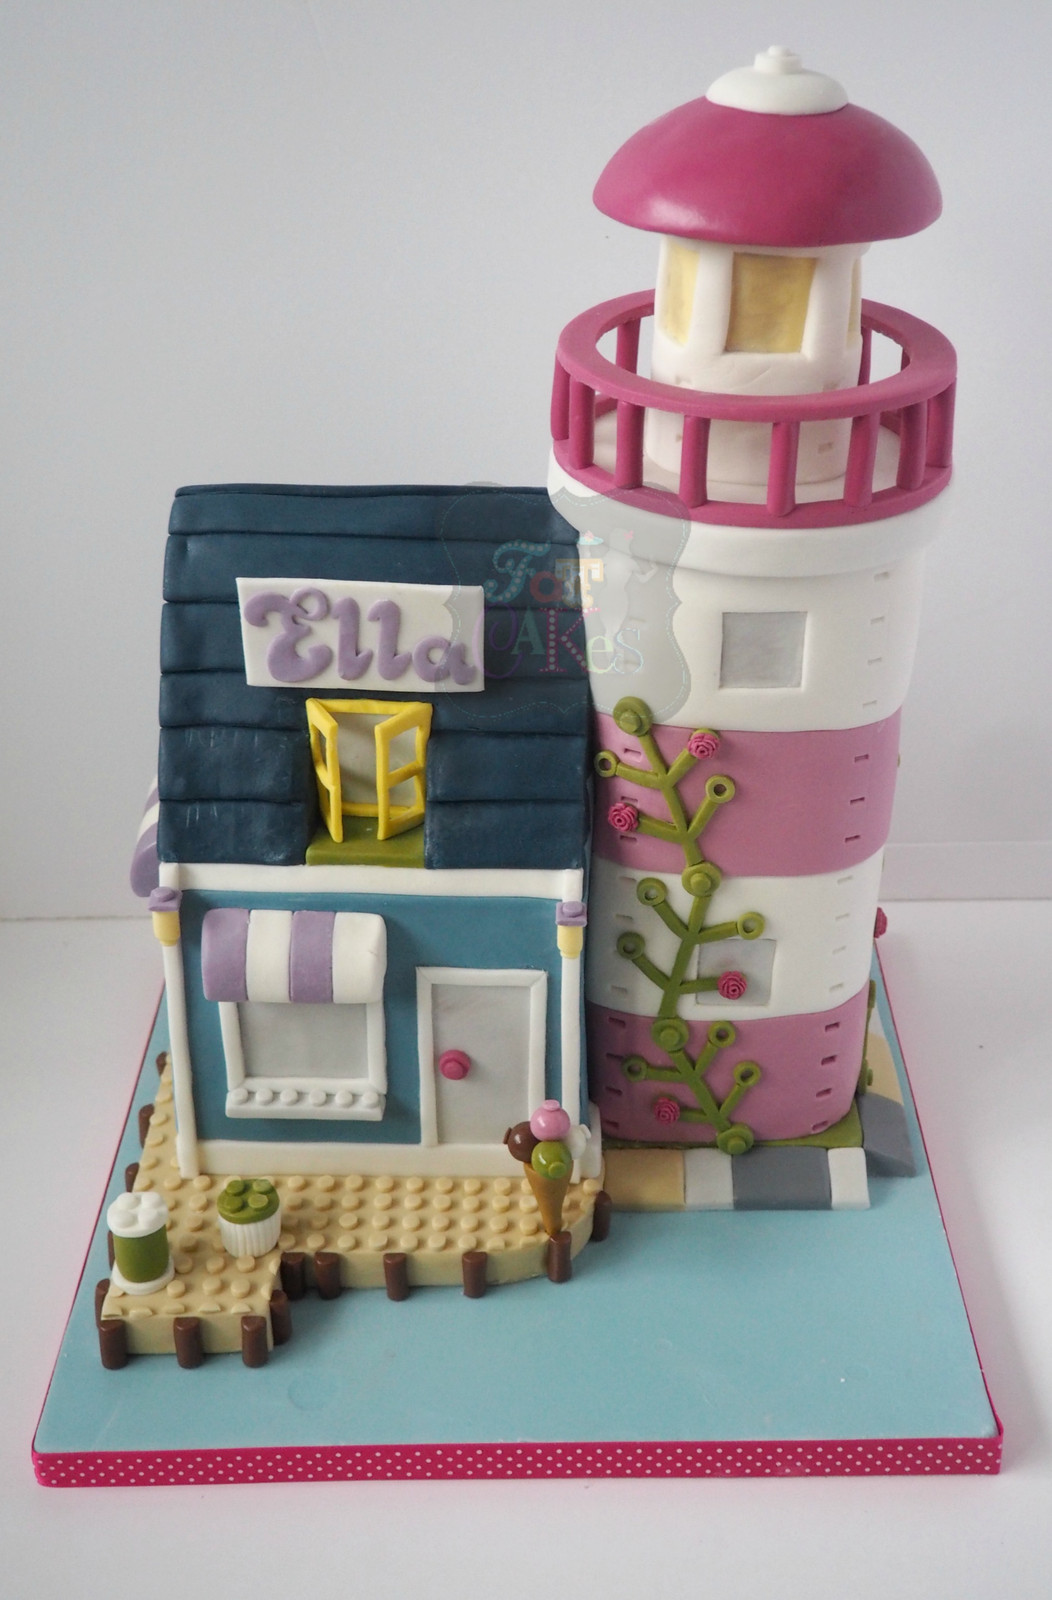 Remarkable Lego Friends Lighthouse Birthday Cake Personalised Birthday Cards Paralily Jamesorg